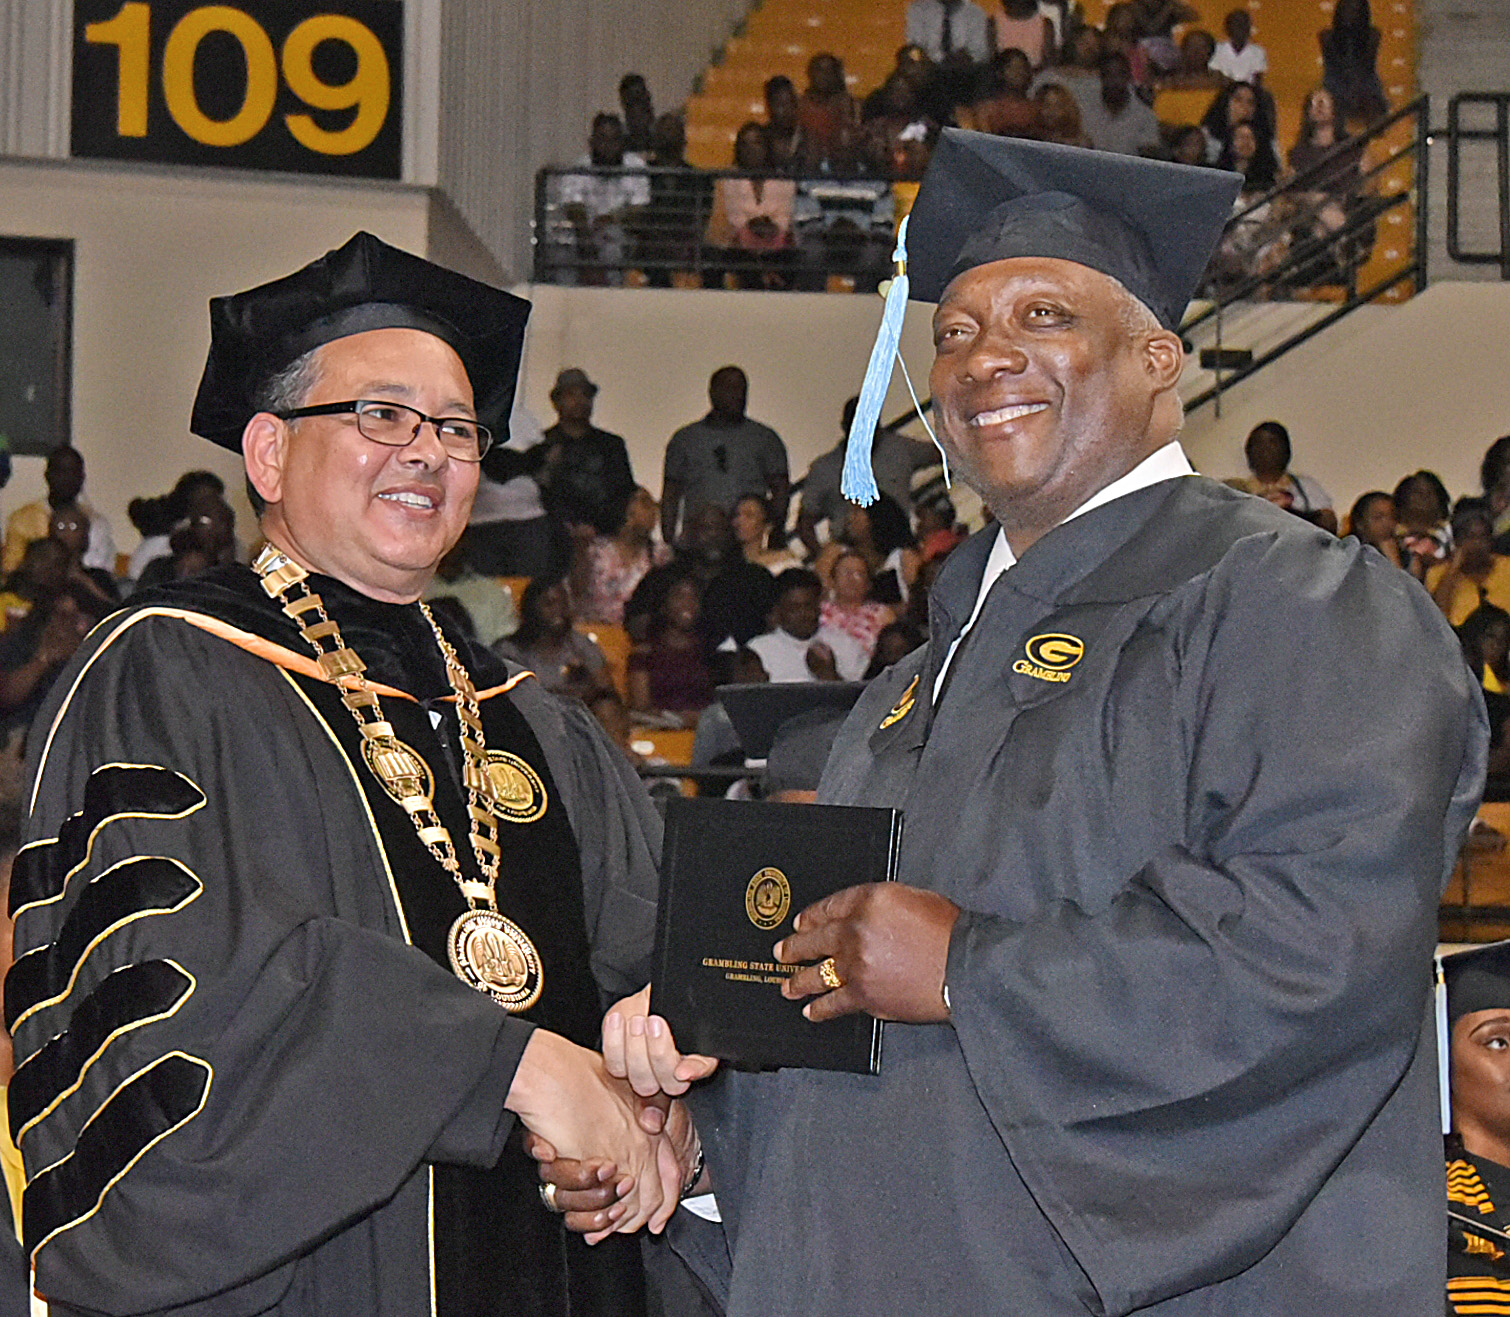 Robert Parham receives diploma